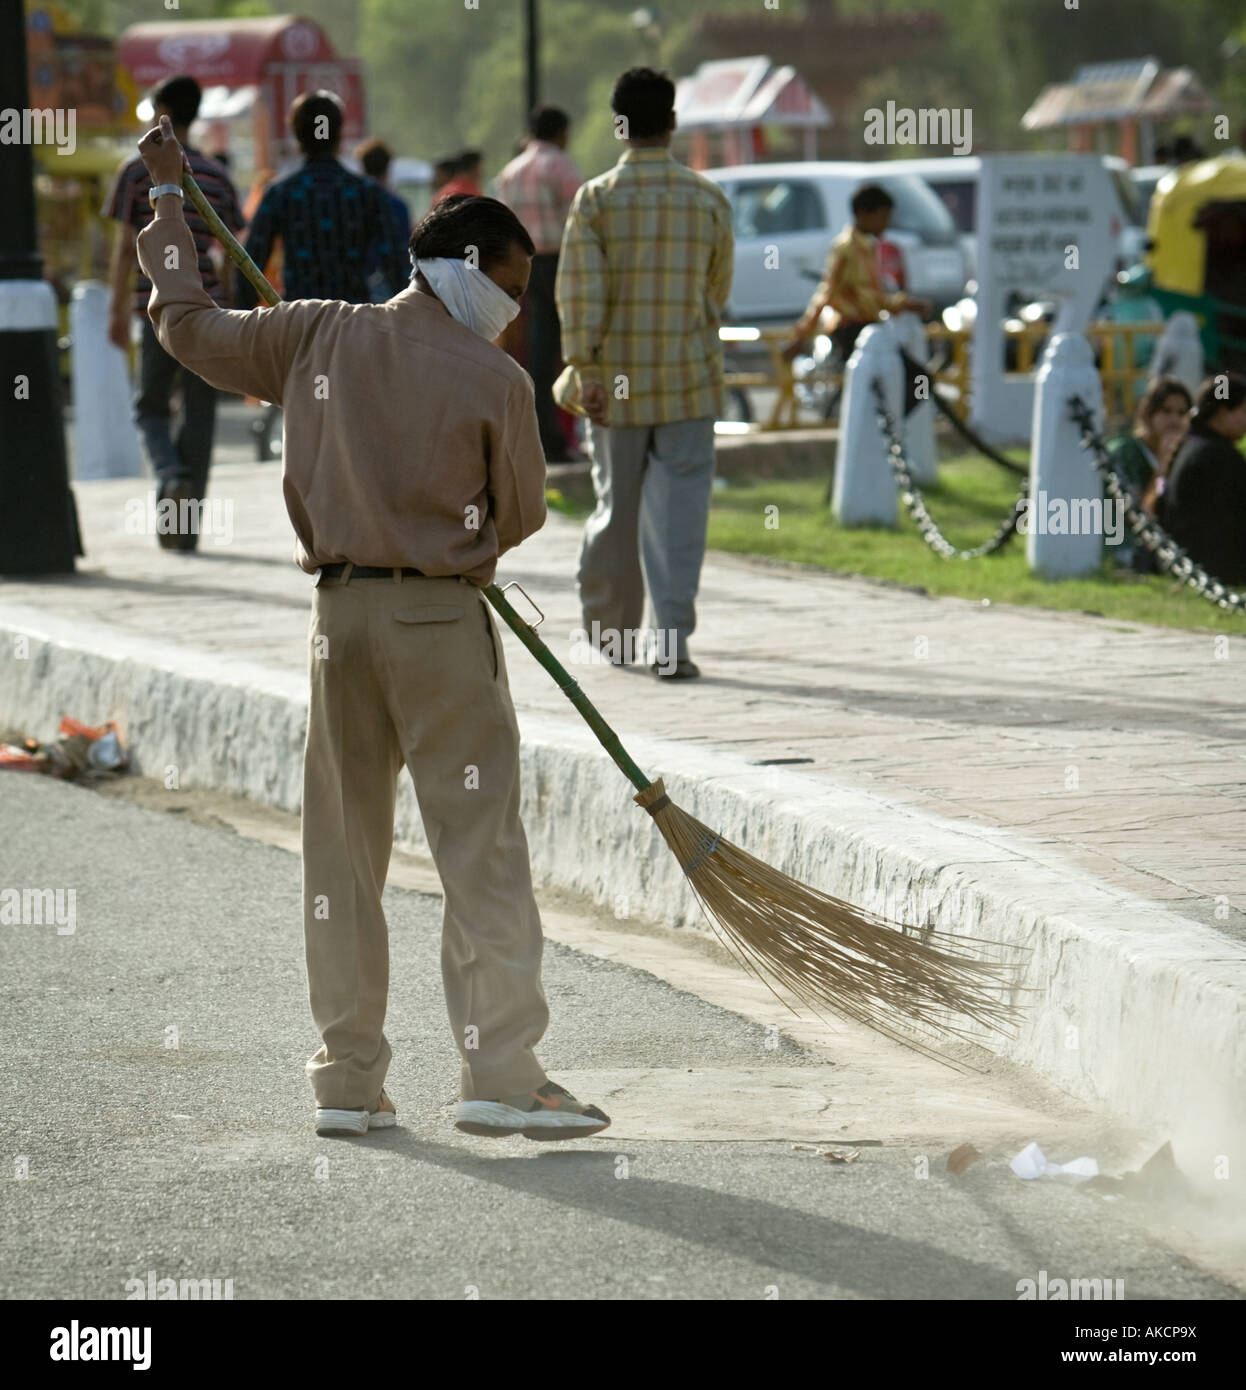 An Indian worker sweeping the road with a traditional broom. He is wearing a makeshift mask  India Gate, Delhi, - Stock Image